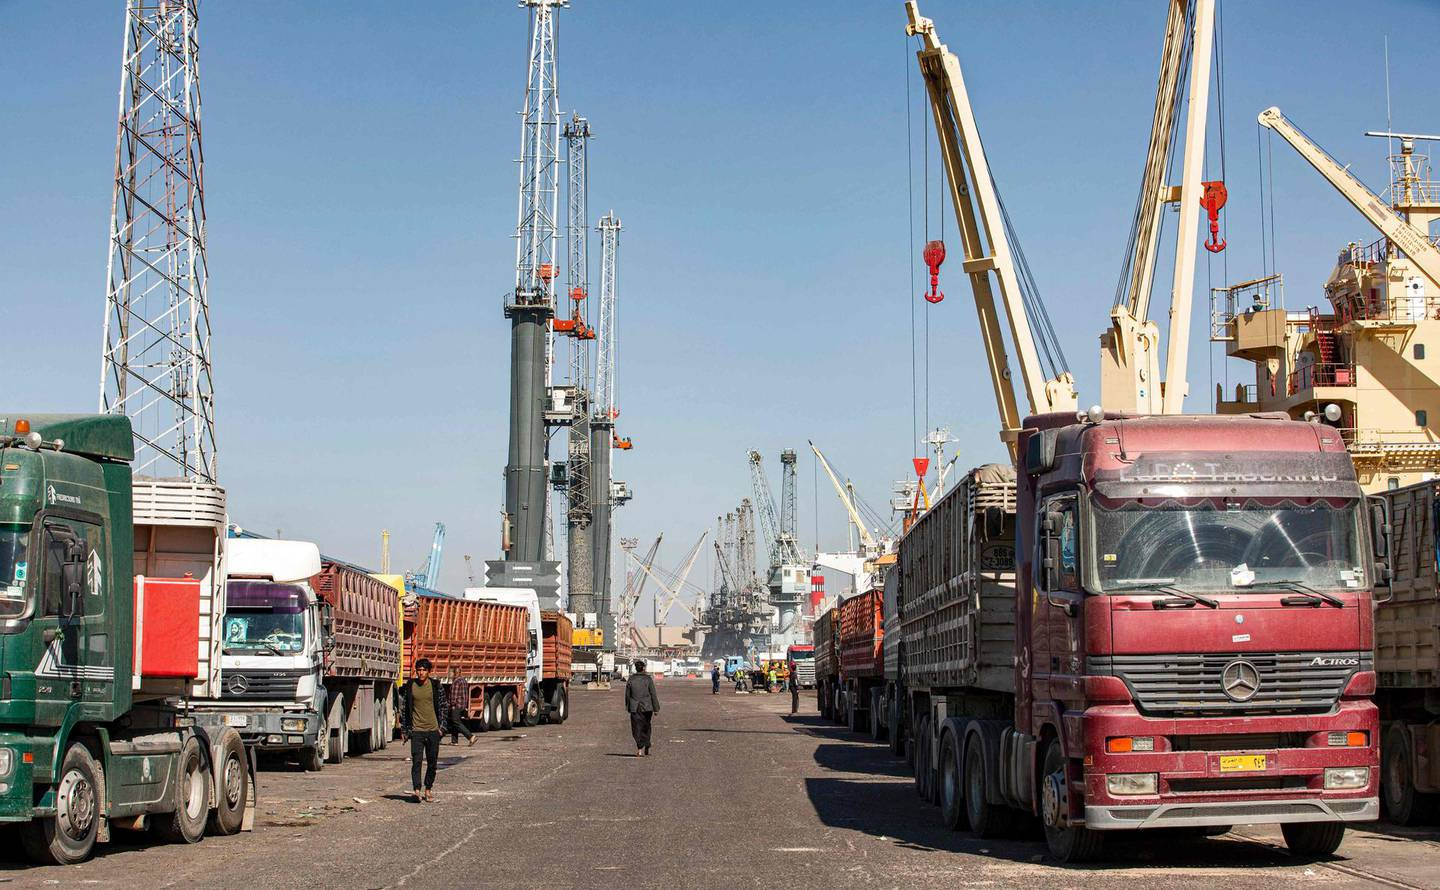 This picture taken on March 14, 2021 shows a view of trucks parked along ships on a pier at the port of Umm Qasr, south of Iraq's southern city of Basra. Iraq is ranked the 21st most corrupt country by Transparency International. In January, the advocacy group said public corruption had deprived Iraqis of basic rights and services, including water, health care, electricity and jobs. It said systemic graft was eating away at Iraqis' hopes for the future, pushing growing numbers to try to emigrate. In 2019, hundreds of thousands of protesters flooded Iraqi cities, first railing against poor public services, then explicitly accusing politicians of plundering resources meant for the people. / AFP / Hussein FALEH